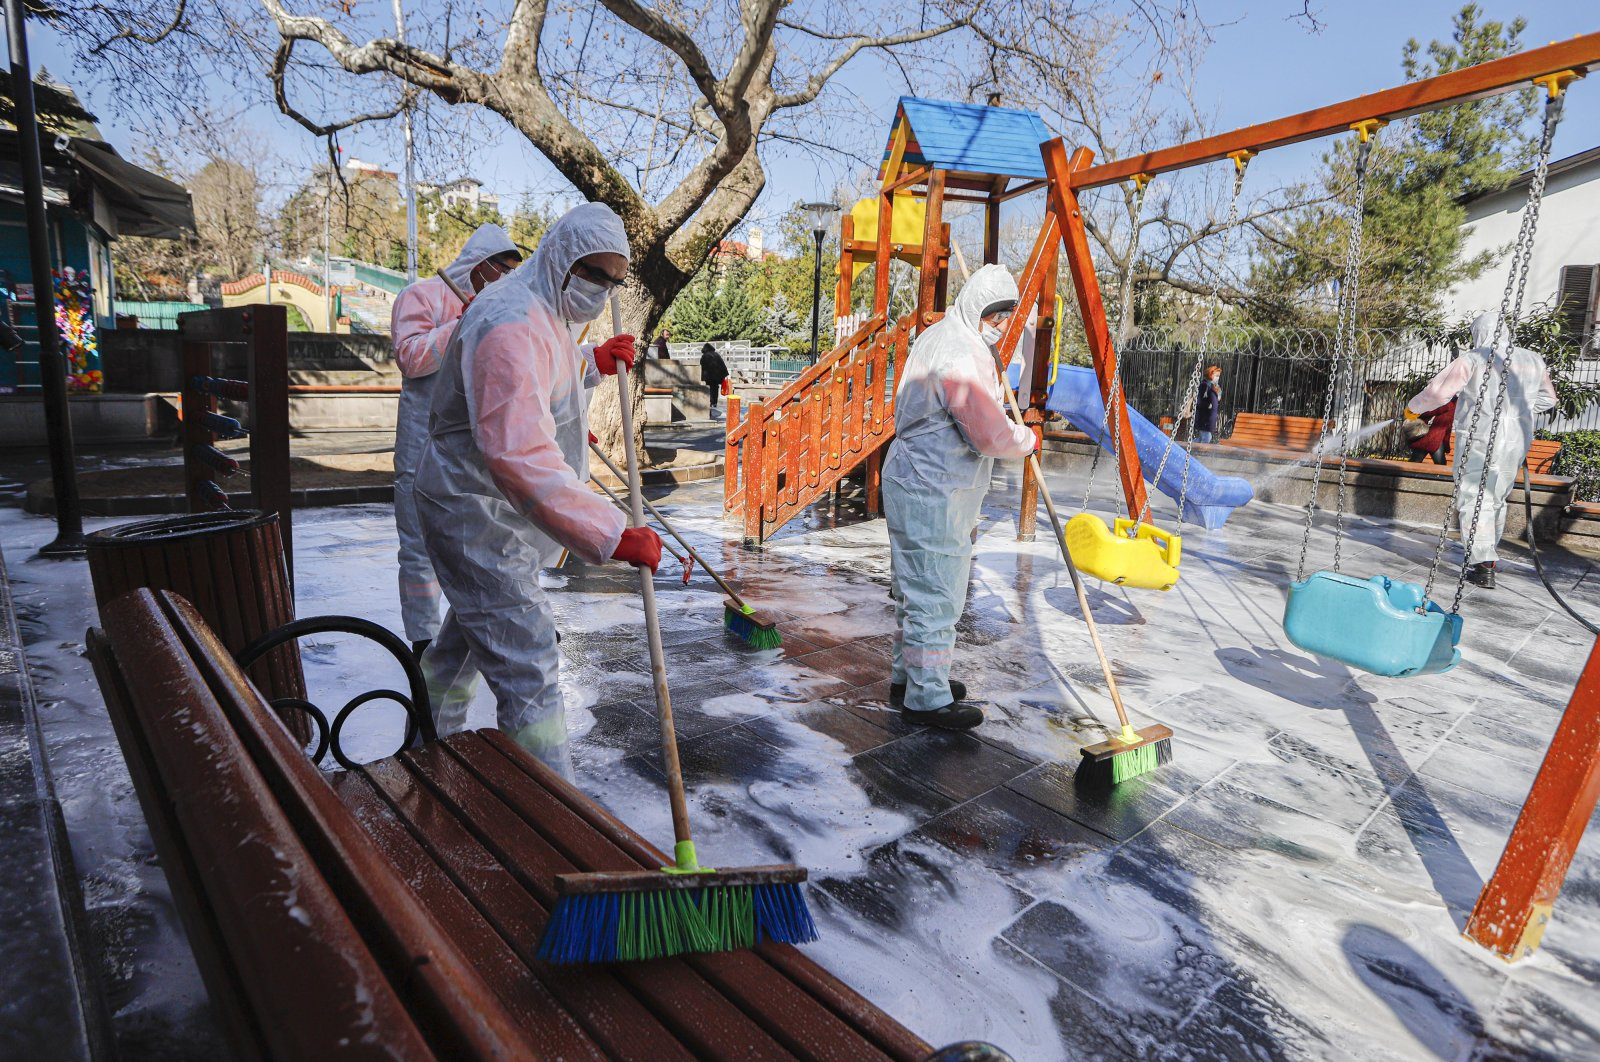 Workers disinfect and clean a playground, Tuesday, March 17, 2020, in Ankara. (DHA Photo)